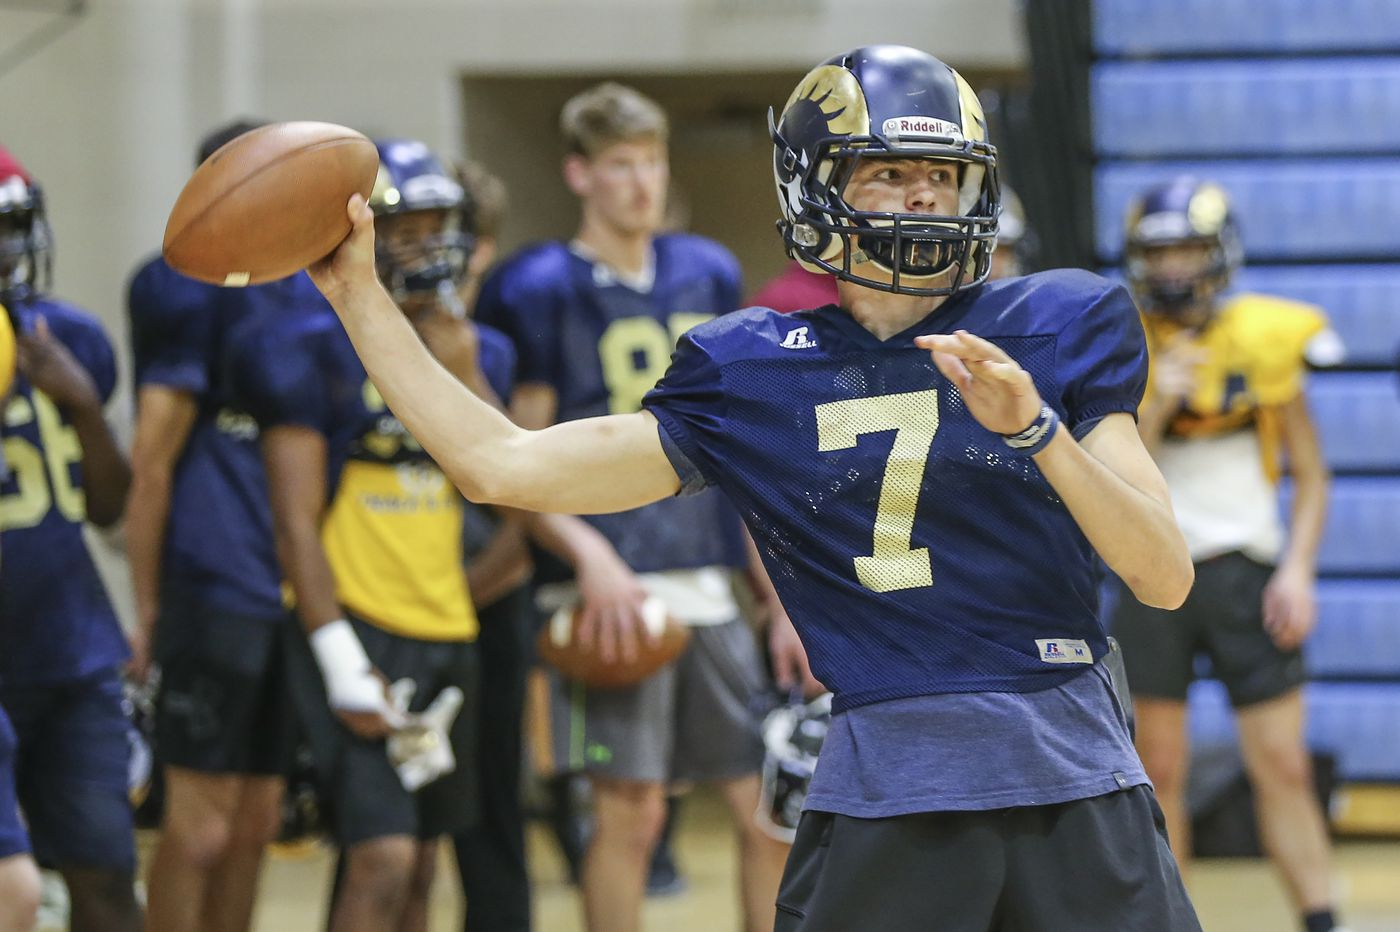 Spring-Ford looks to make splash against Haverford High in District 1 Class 6A football playoffs